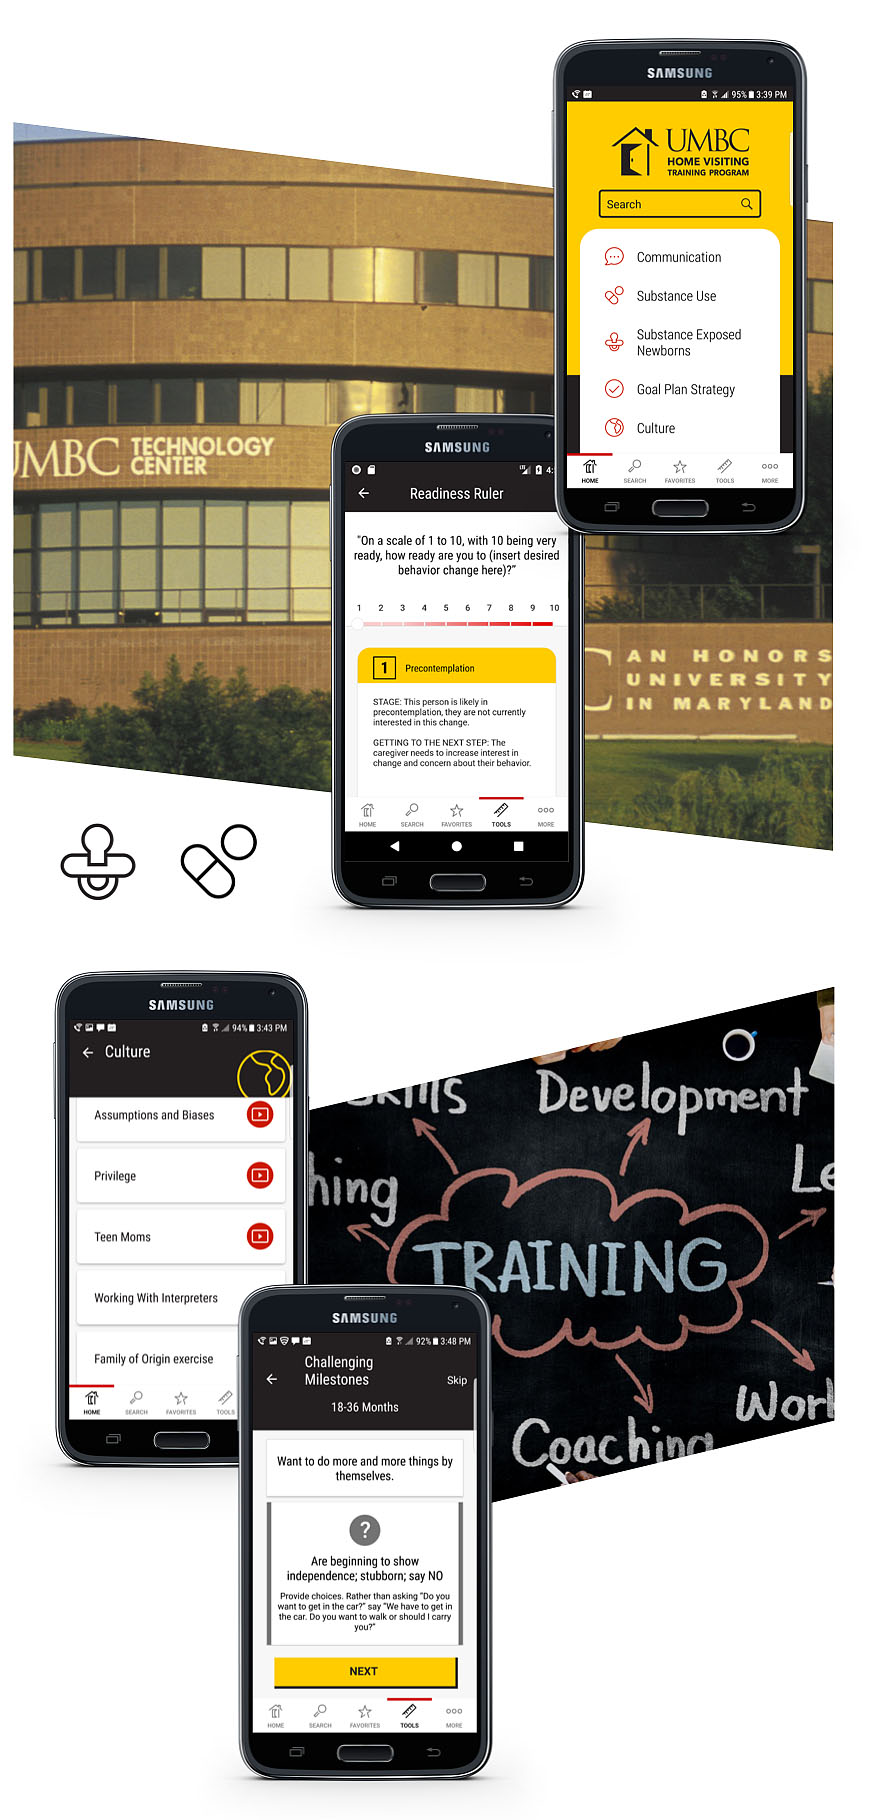 At the top: Two smartphones in the forefront displaying UMBC Home Visiting Training Program website with the UMBC building in the background. At the bottom: Two smartphones in the forefront displaying UMBC Home Visiting Training Program website with an idea board in the background.